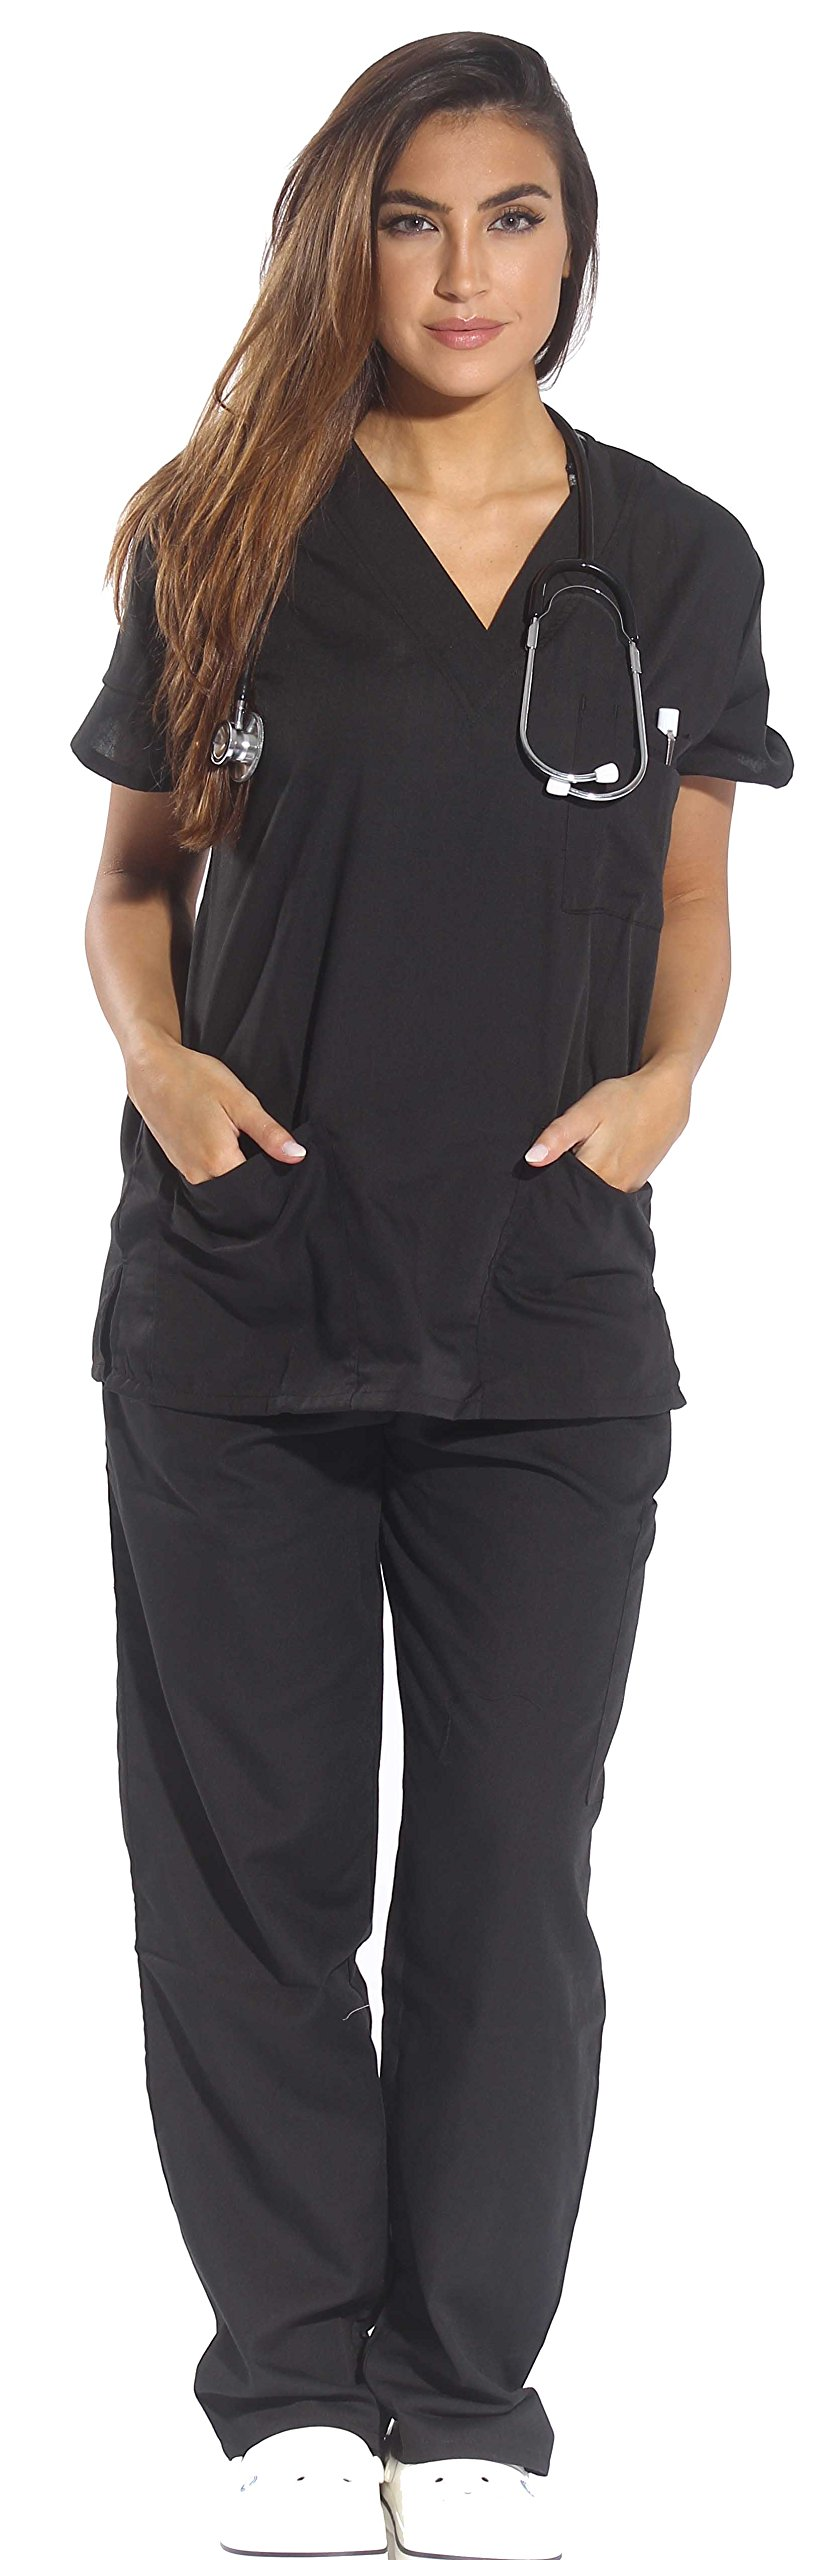 Just Love Women's Scrub Sets Six Pocket Medical Scrubs (V-Neck With Cargo Pant), Black, Small by Just Love